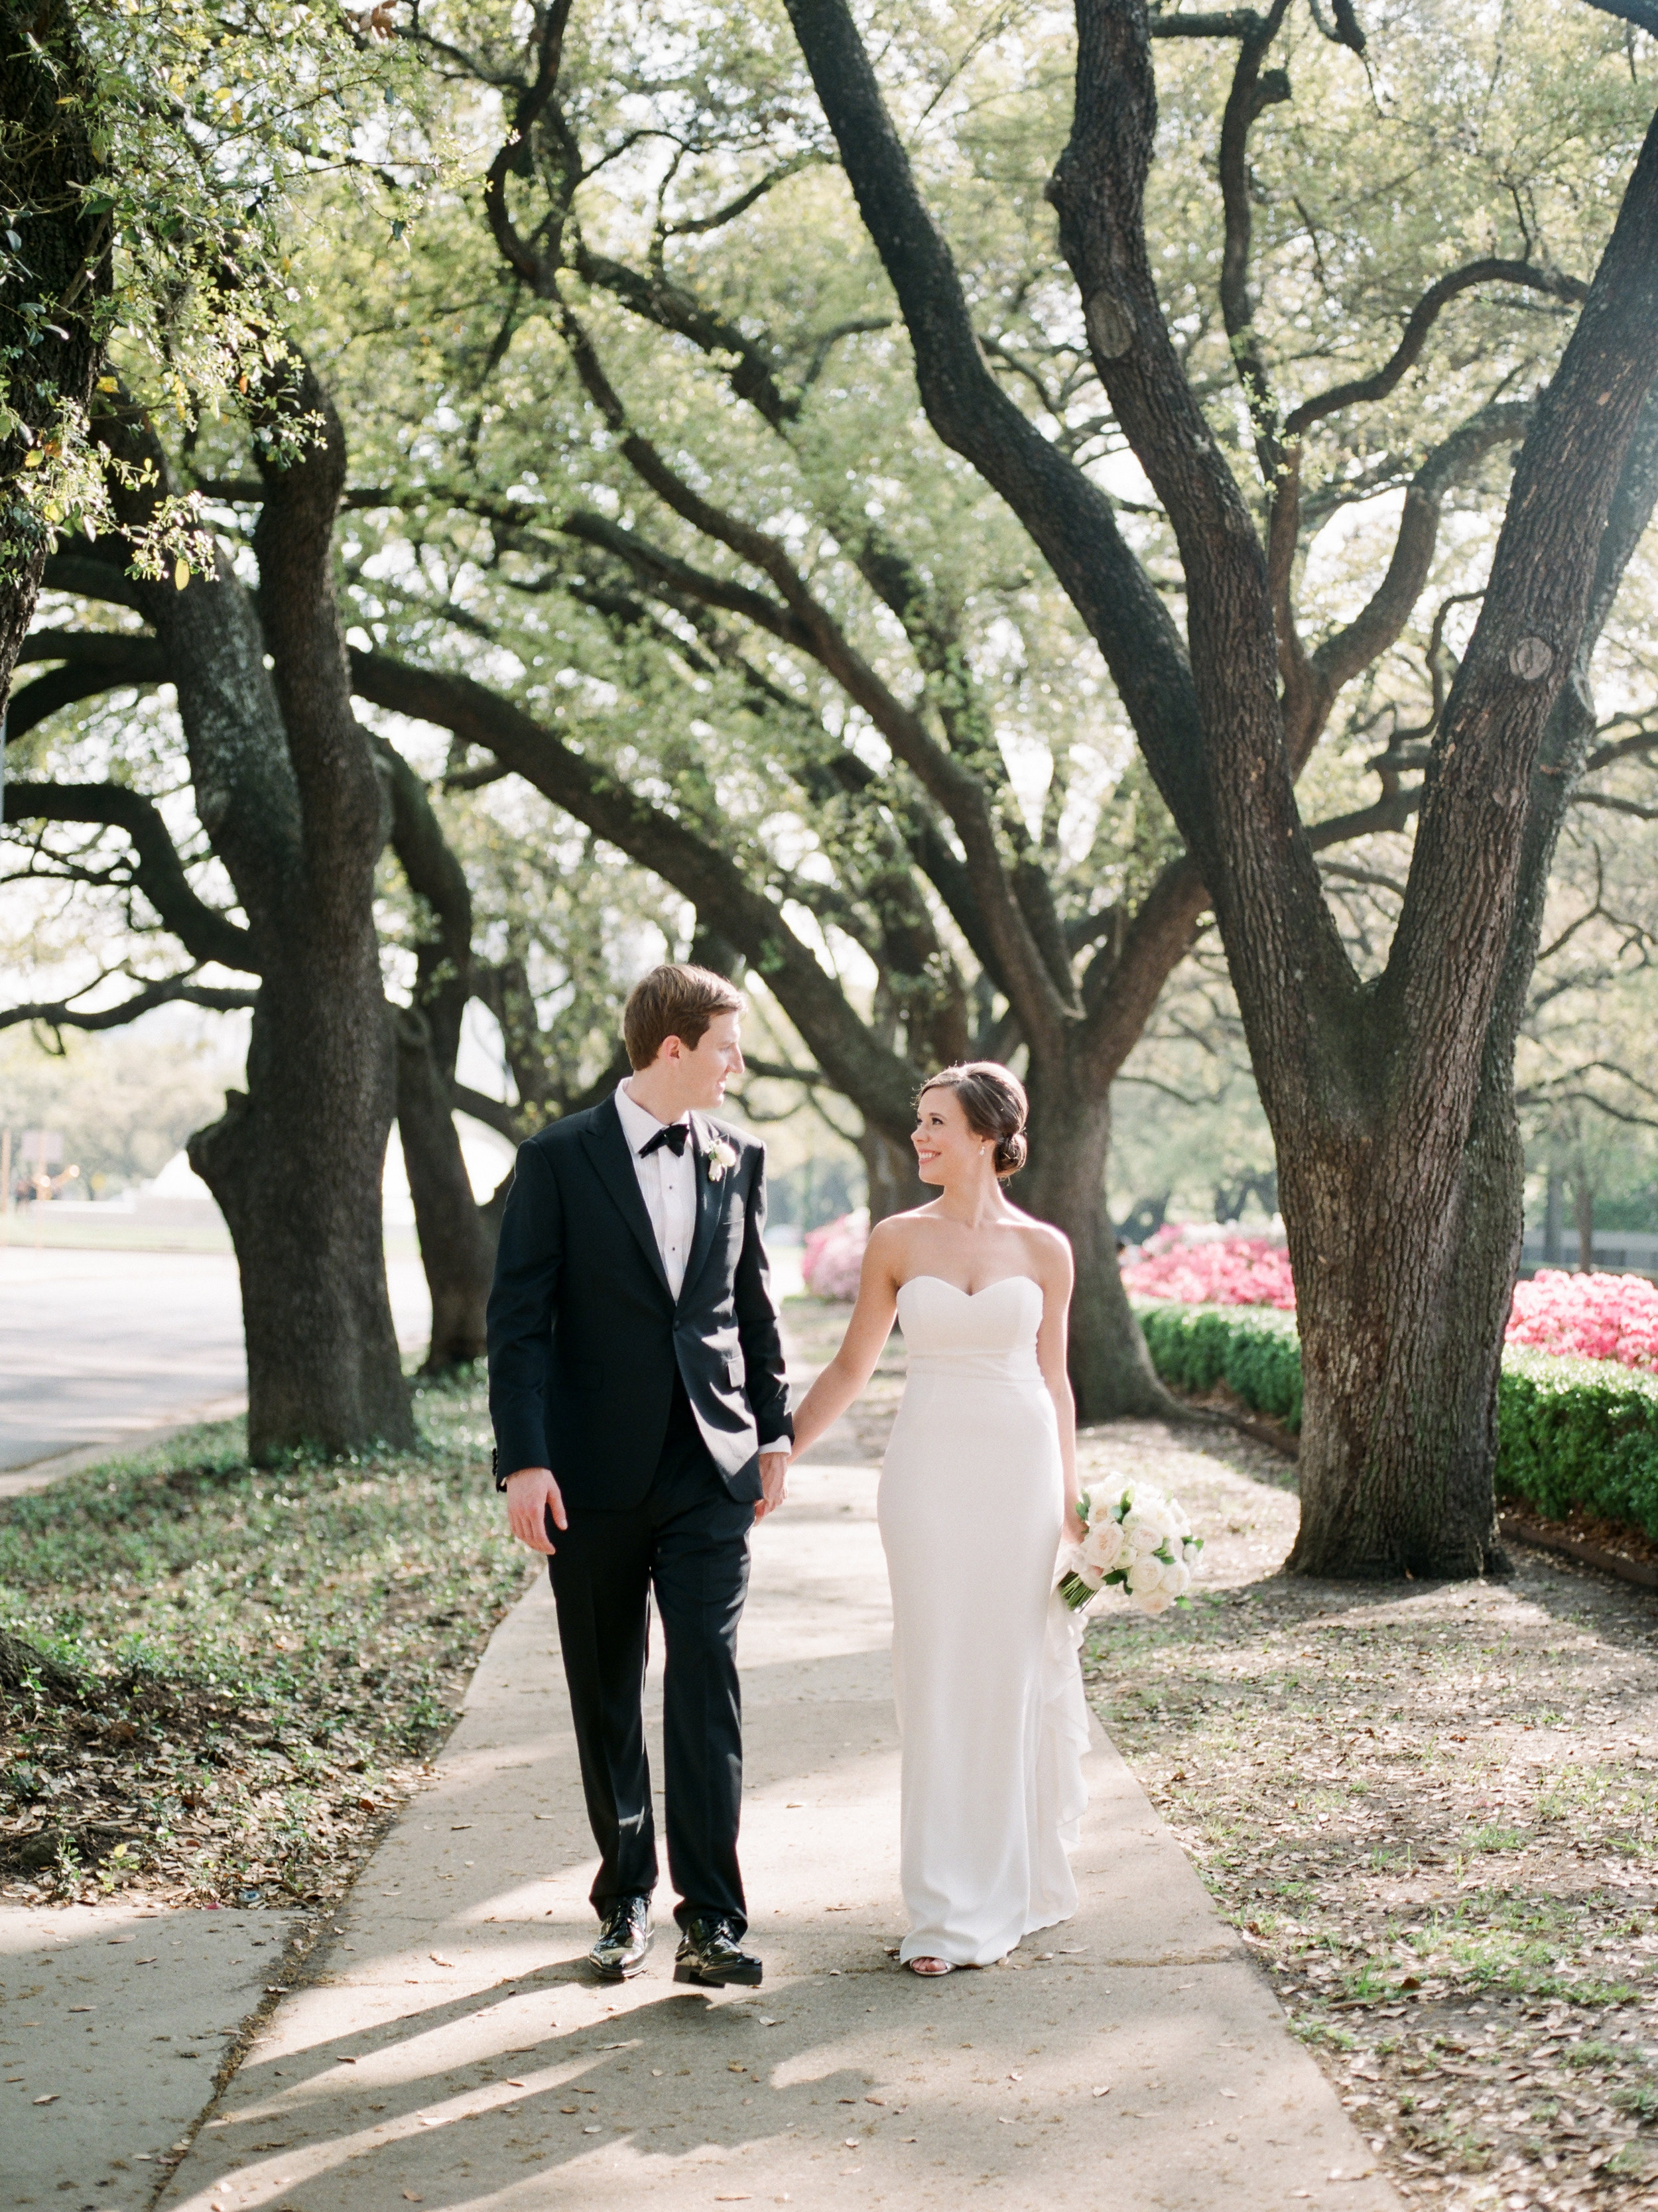 Houston wedding photographer, Houston film photographer, Houston wedding venues